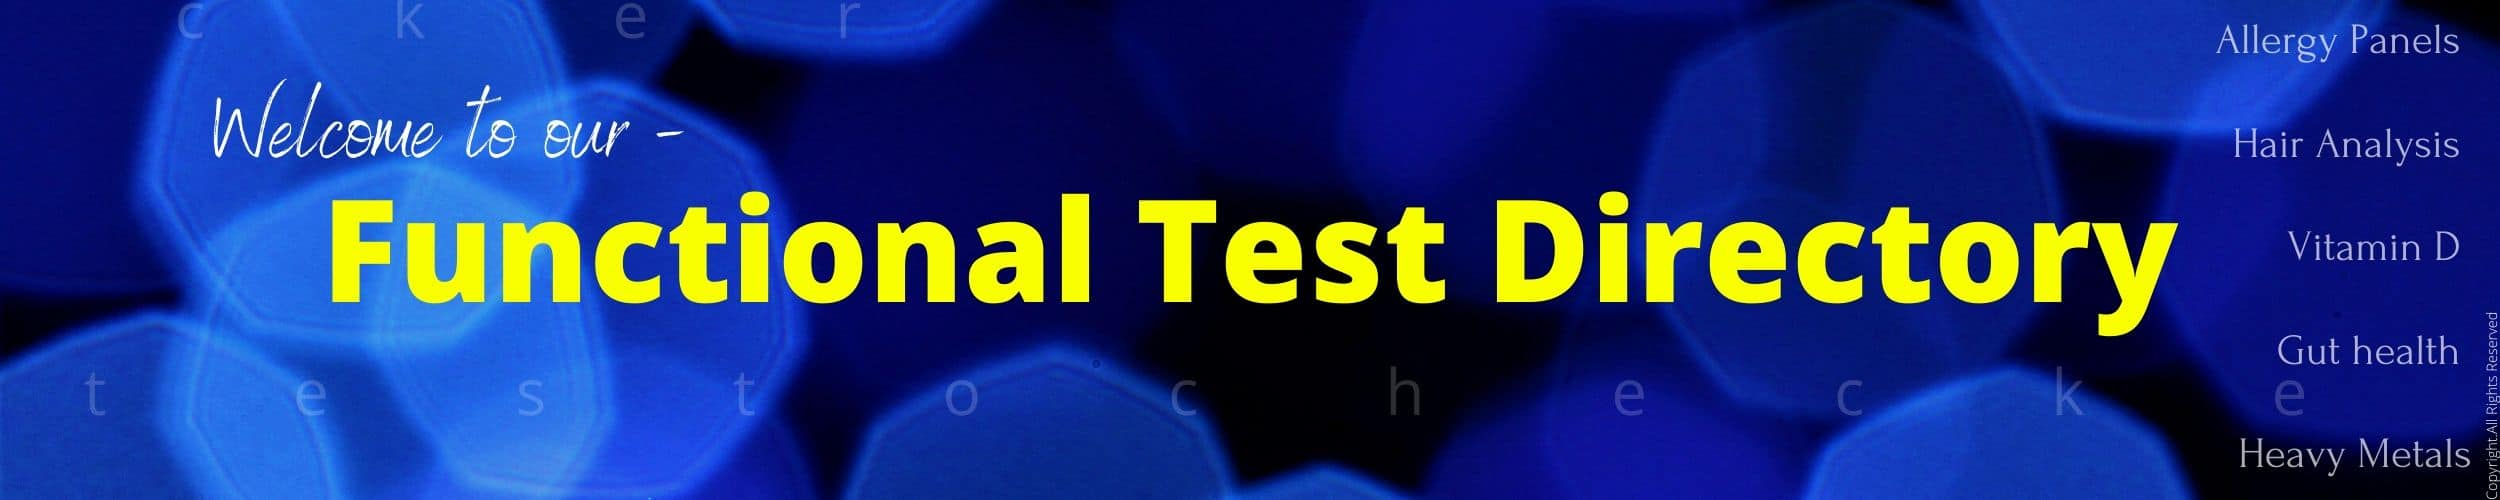 testochecker functional test directory banner